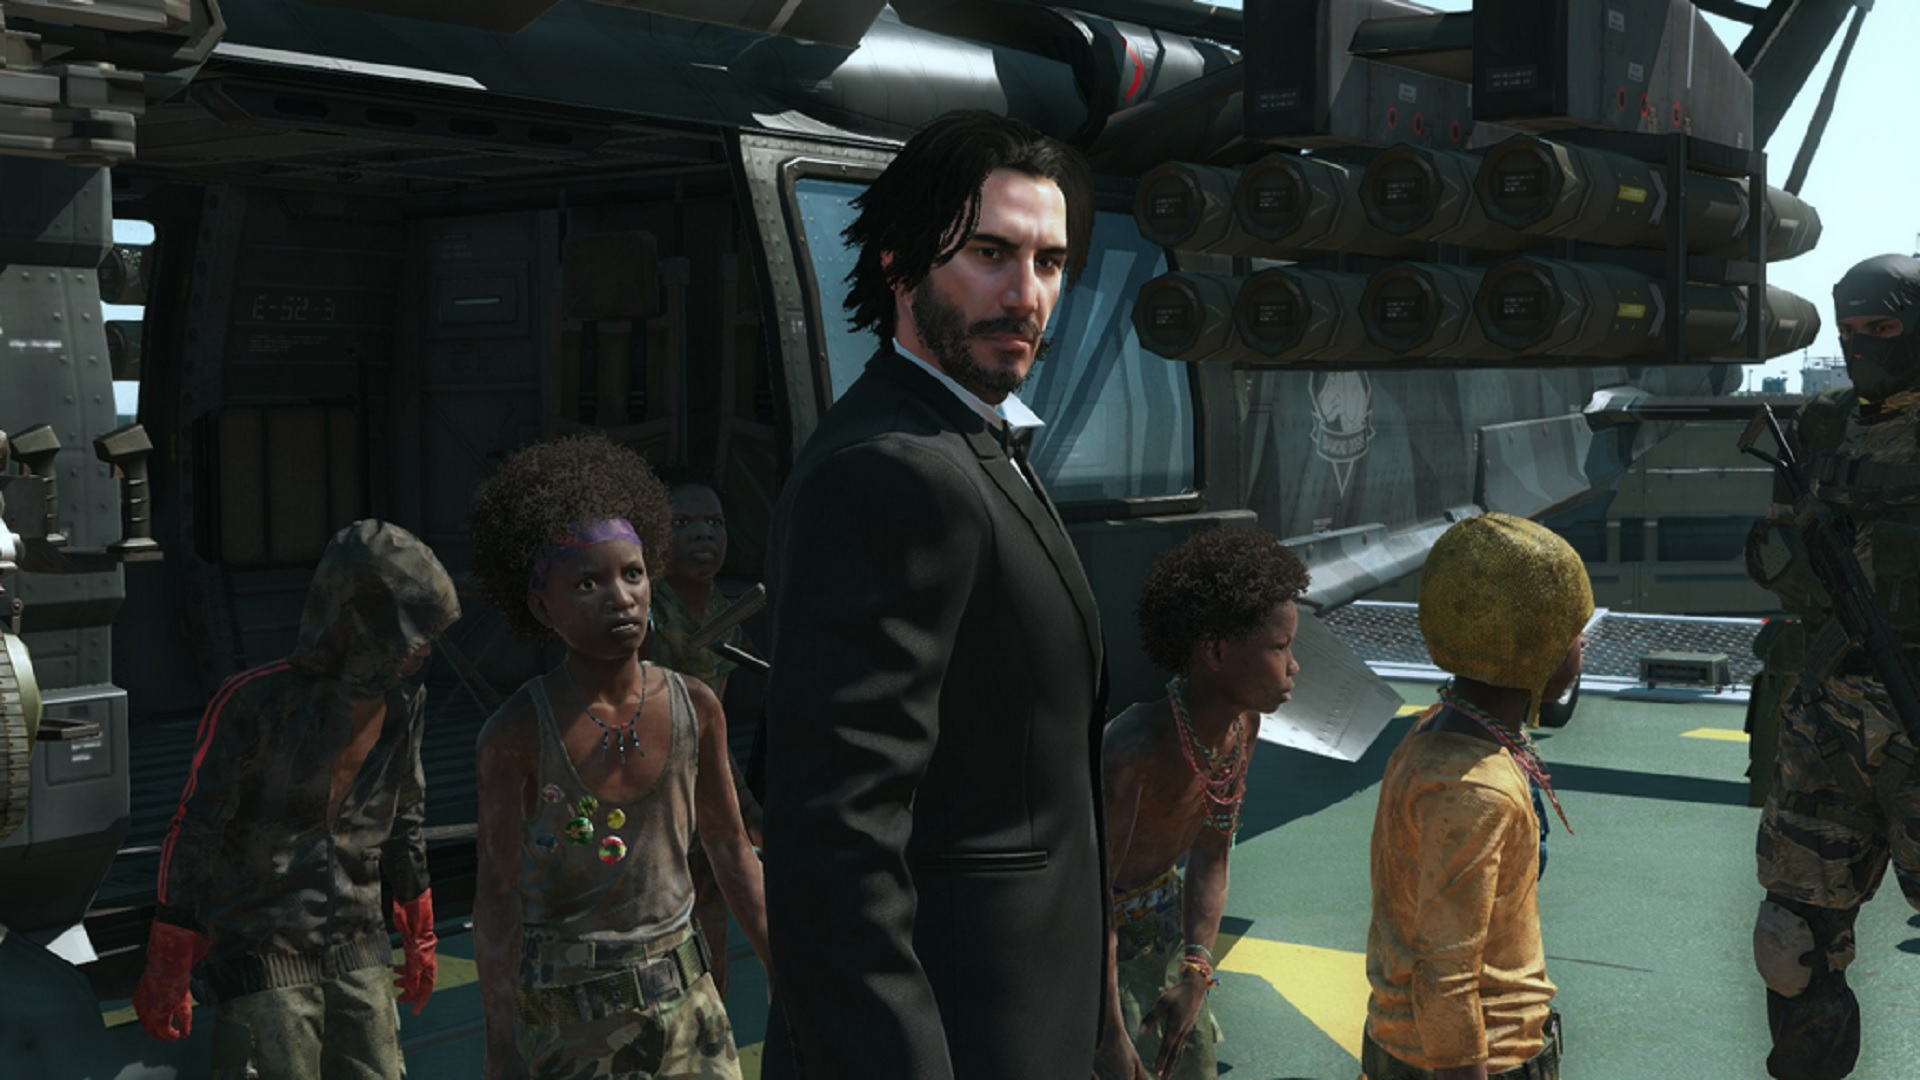 John Wick And Johnny Silverhand Arrive In Metal Gear Solid 5 Let S Talk About Video Games